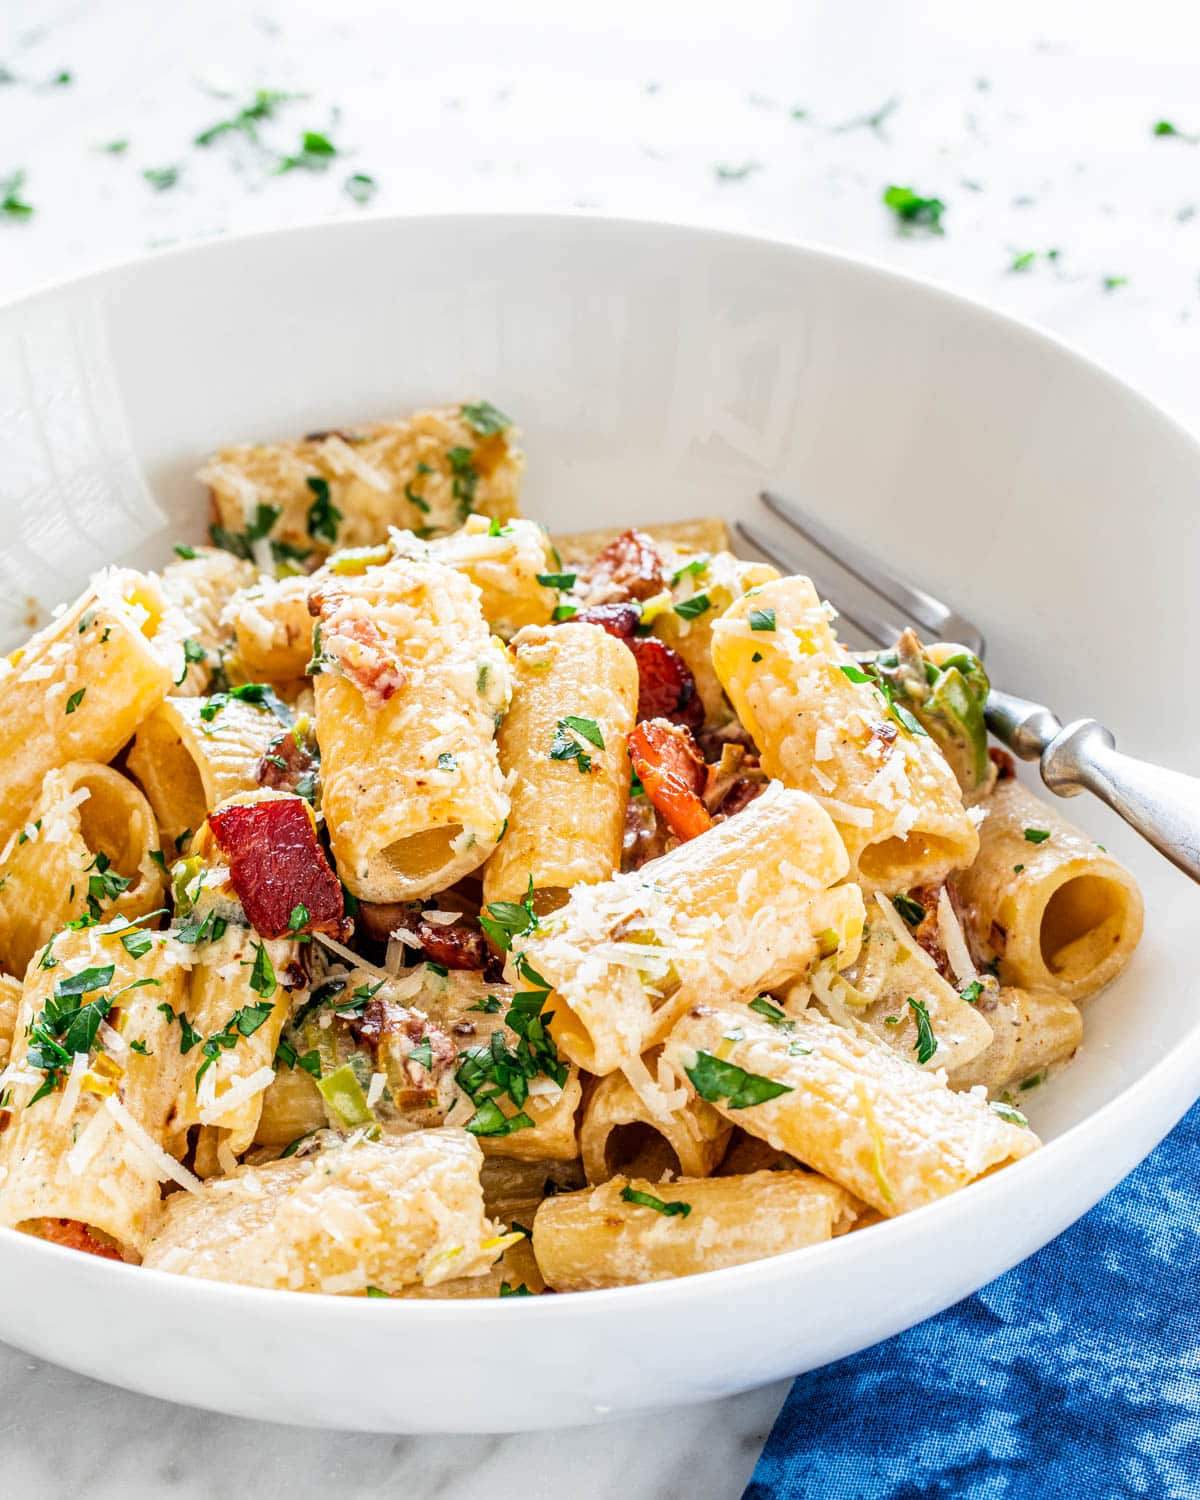 a white bowl holding a plate of rigatoni with creamy bacon and leek sauce